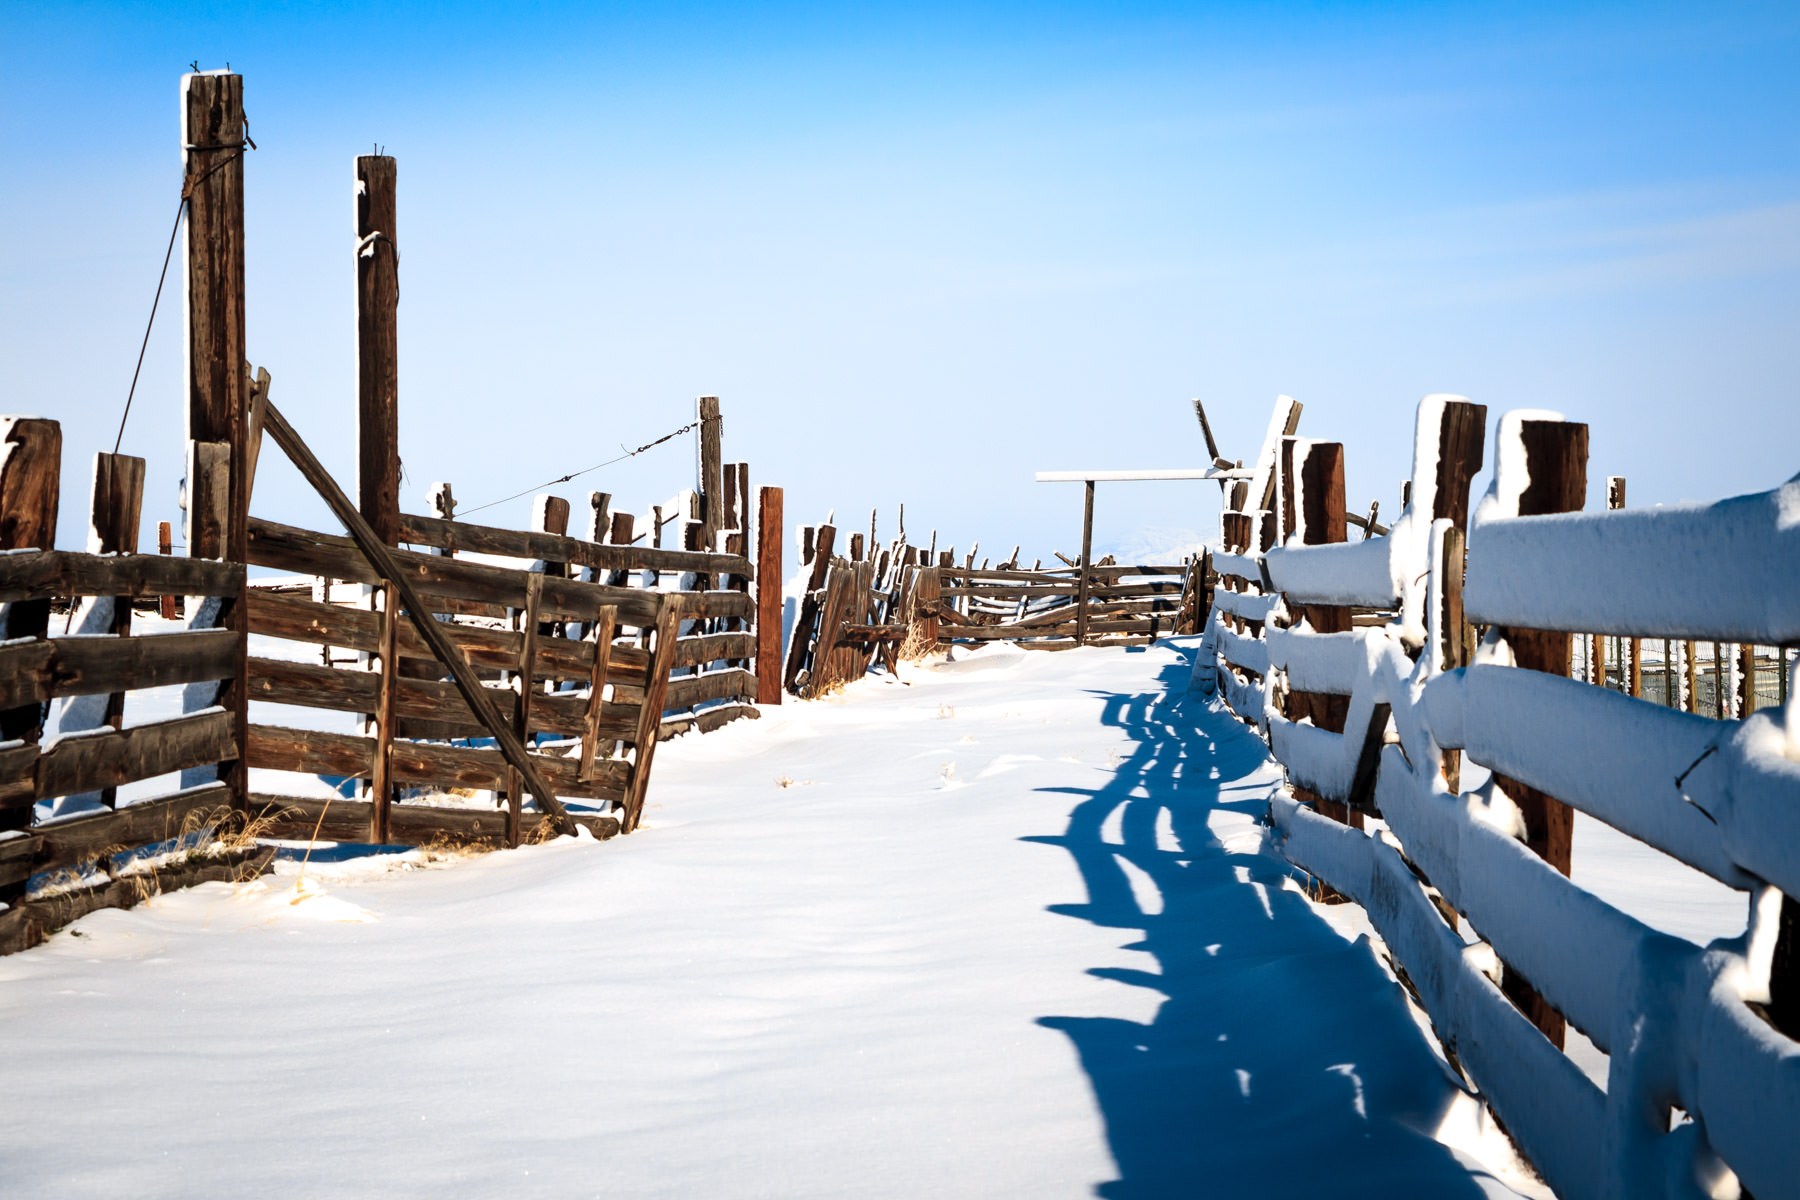 A very cold and snowy fence at Utah's Antelope Island State Park.